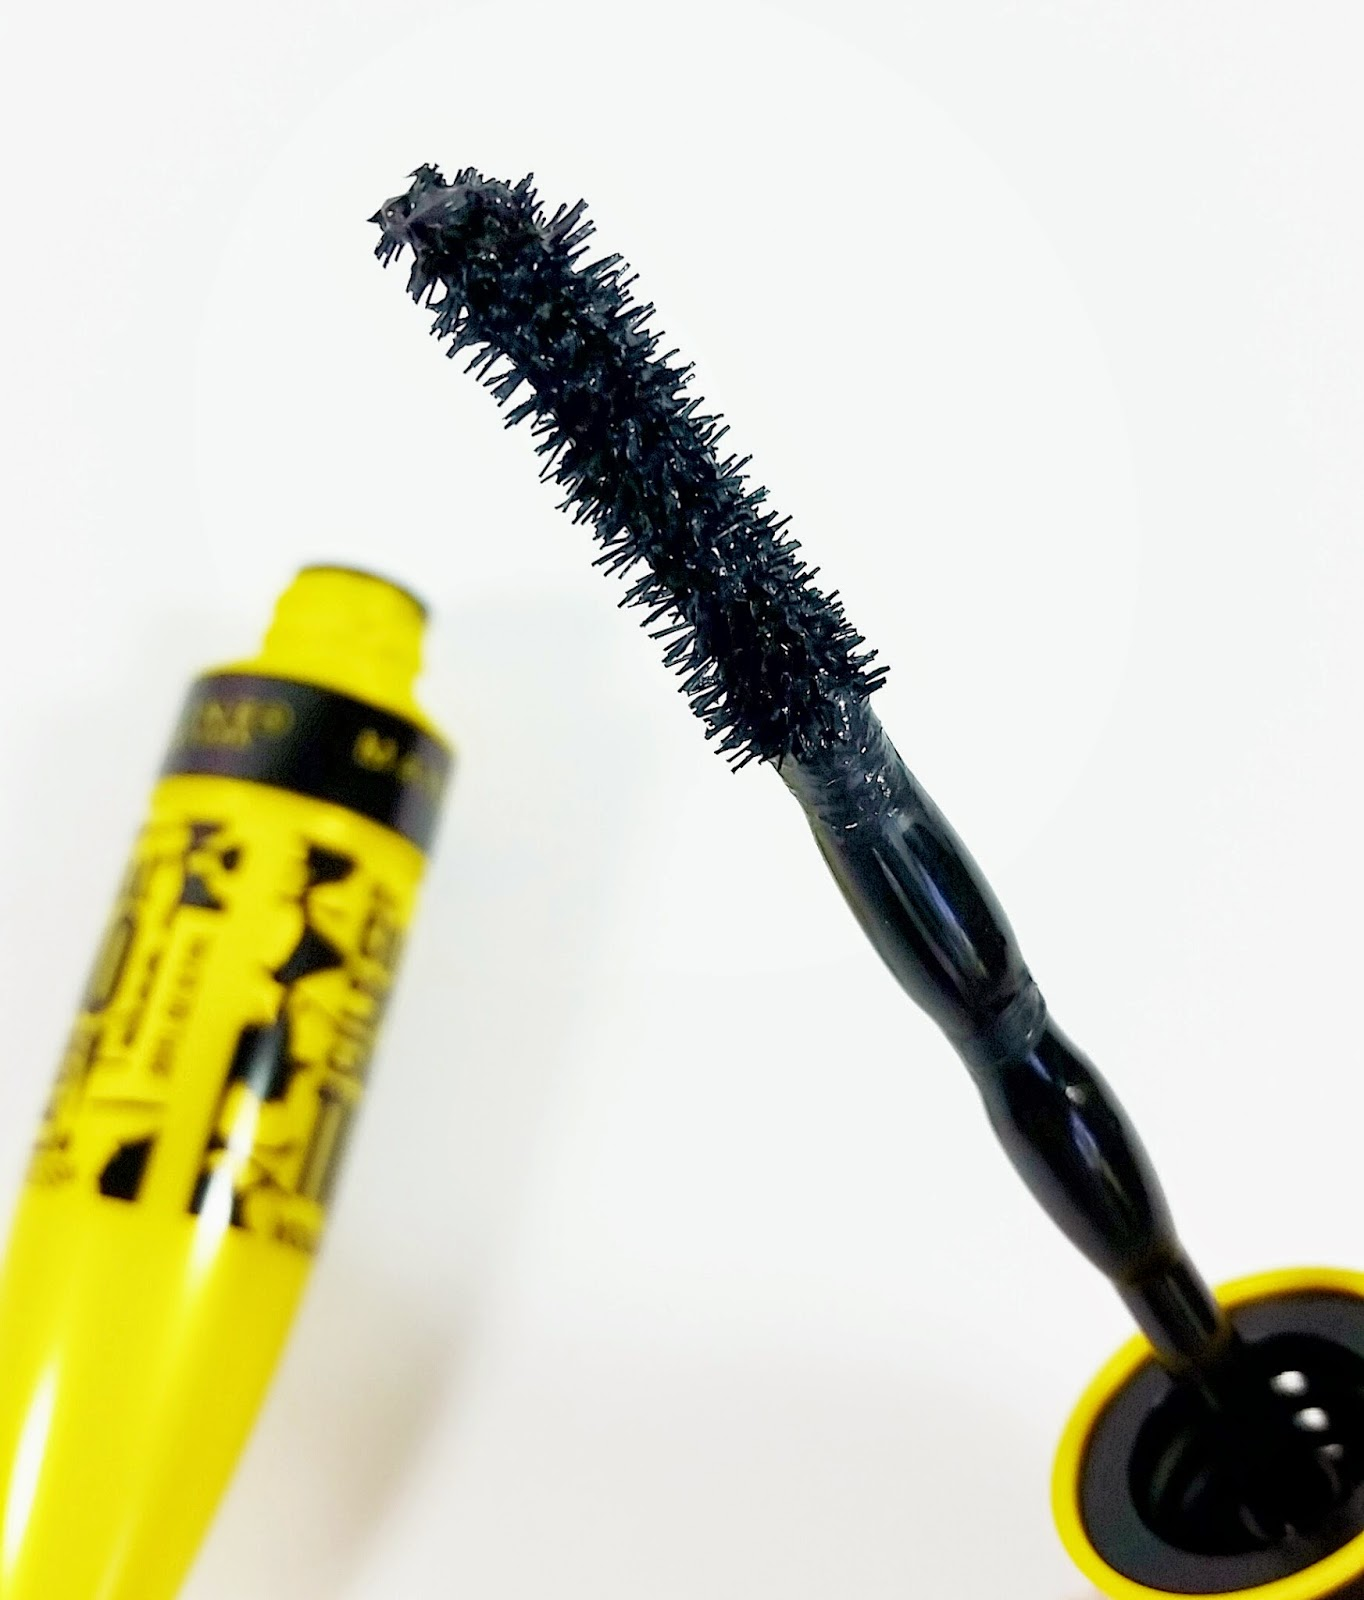 dc74334c9a0 Maybelline The Colossal Chaotic Lash Mascara Review | The Budget ...